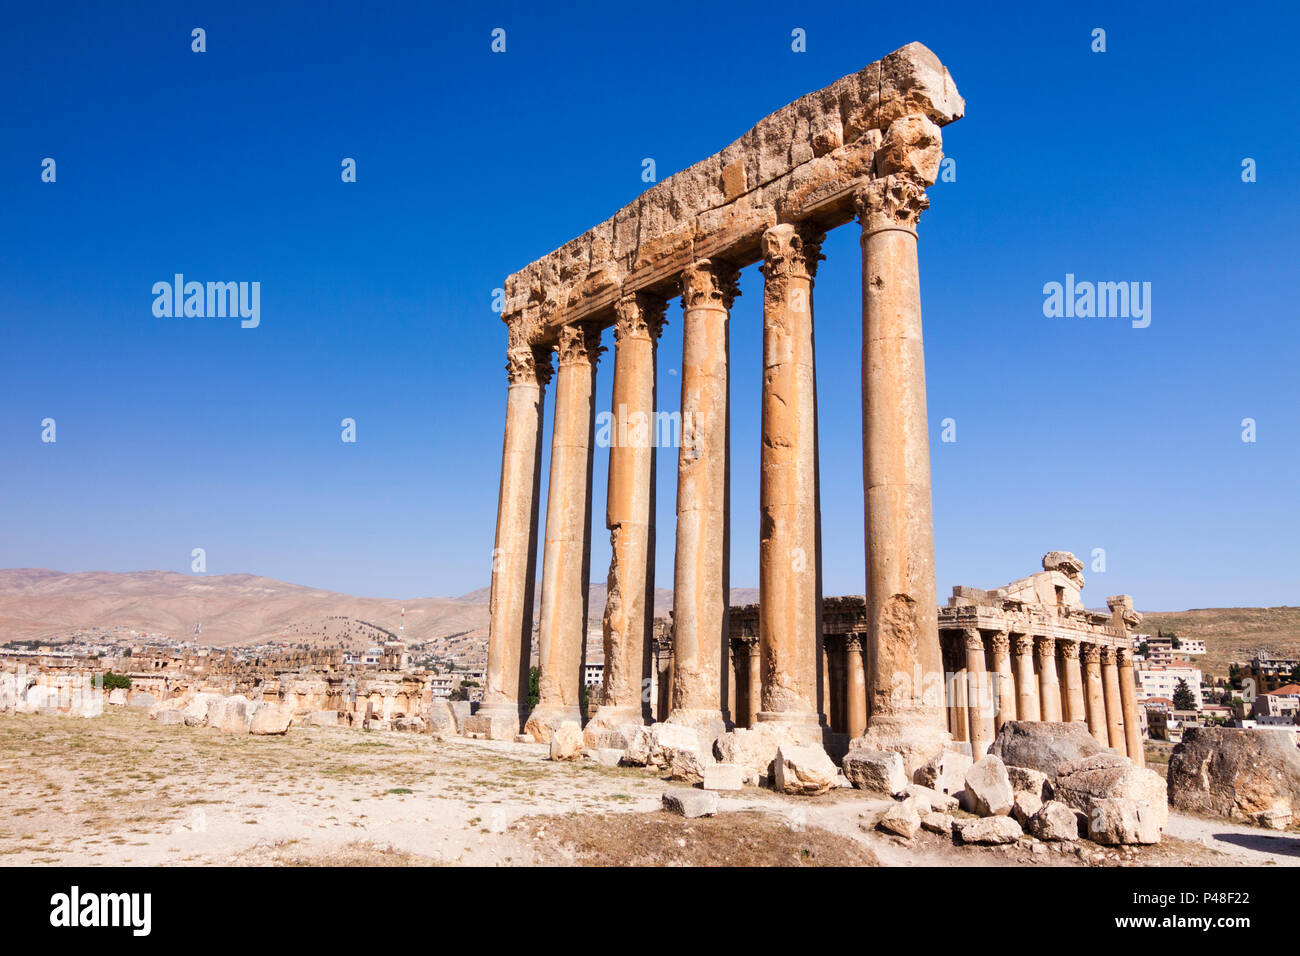 Baalbek, Lebanon : Unesco World Heritage site of the ruins of the temples of Jupiter and Bacchus (150 AD to 250 AD) at Baalbek Roman Heliopolis. - Stock Image